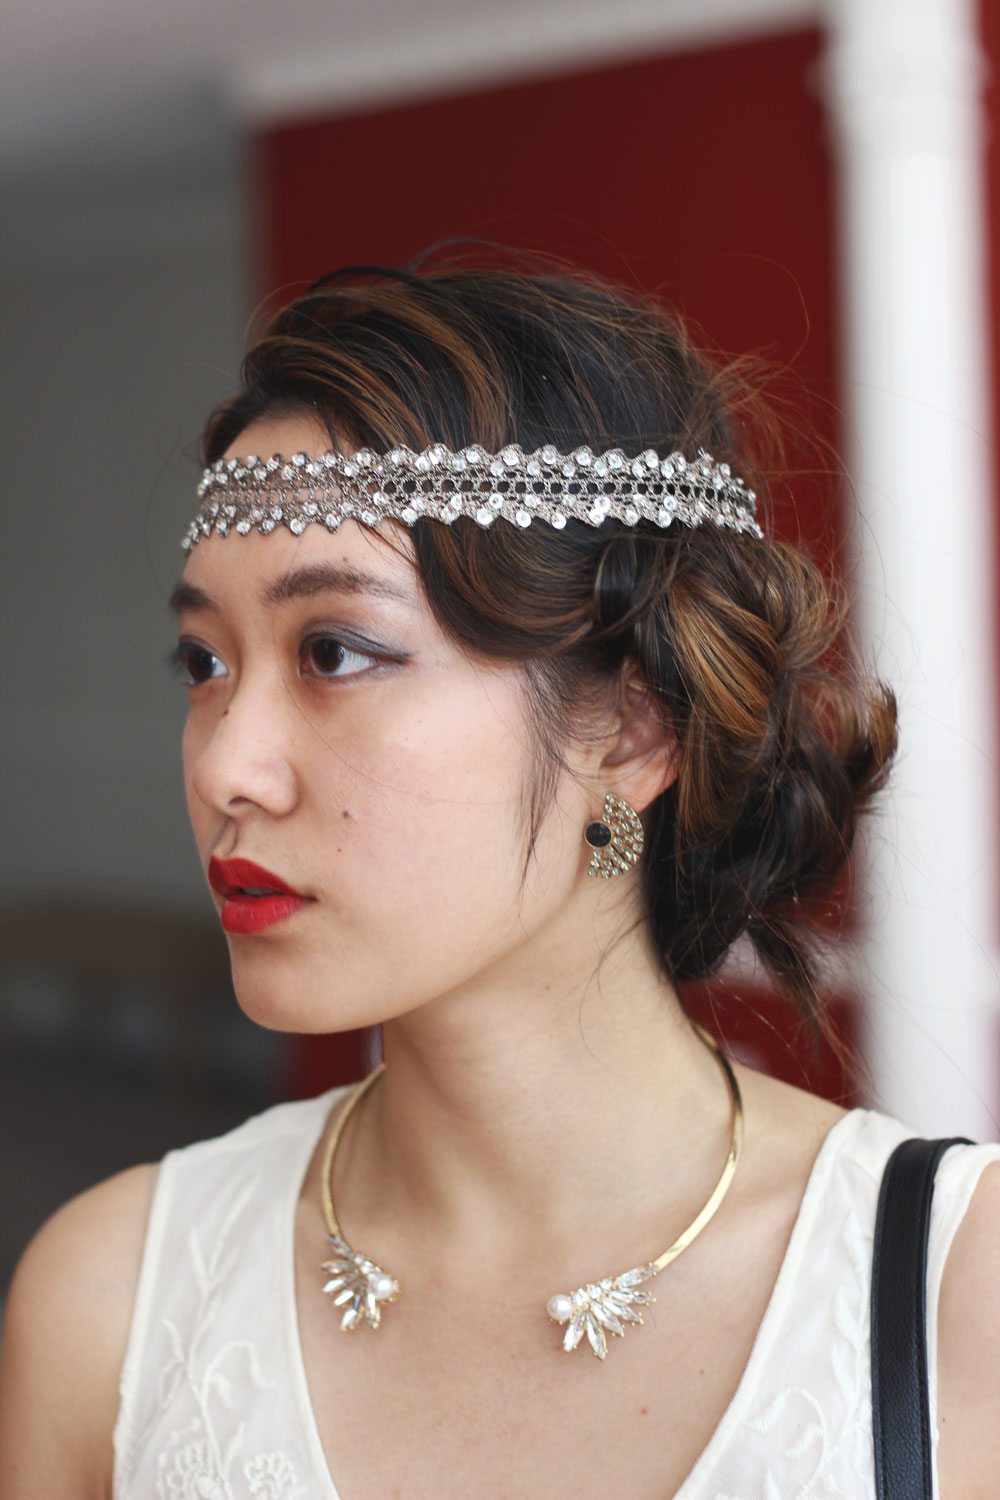 Flapper 1920's party hair inspiration with jeweled headband and pin curls